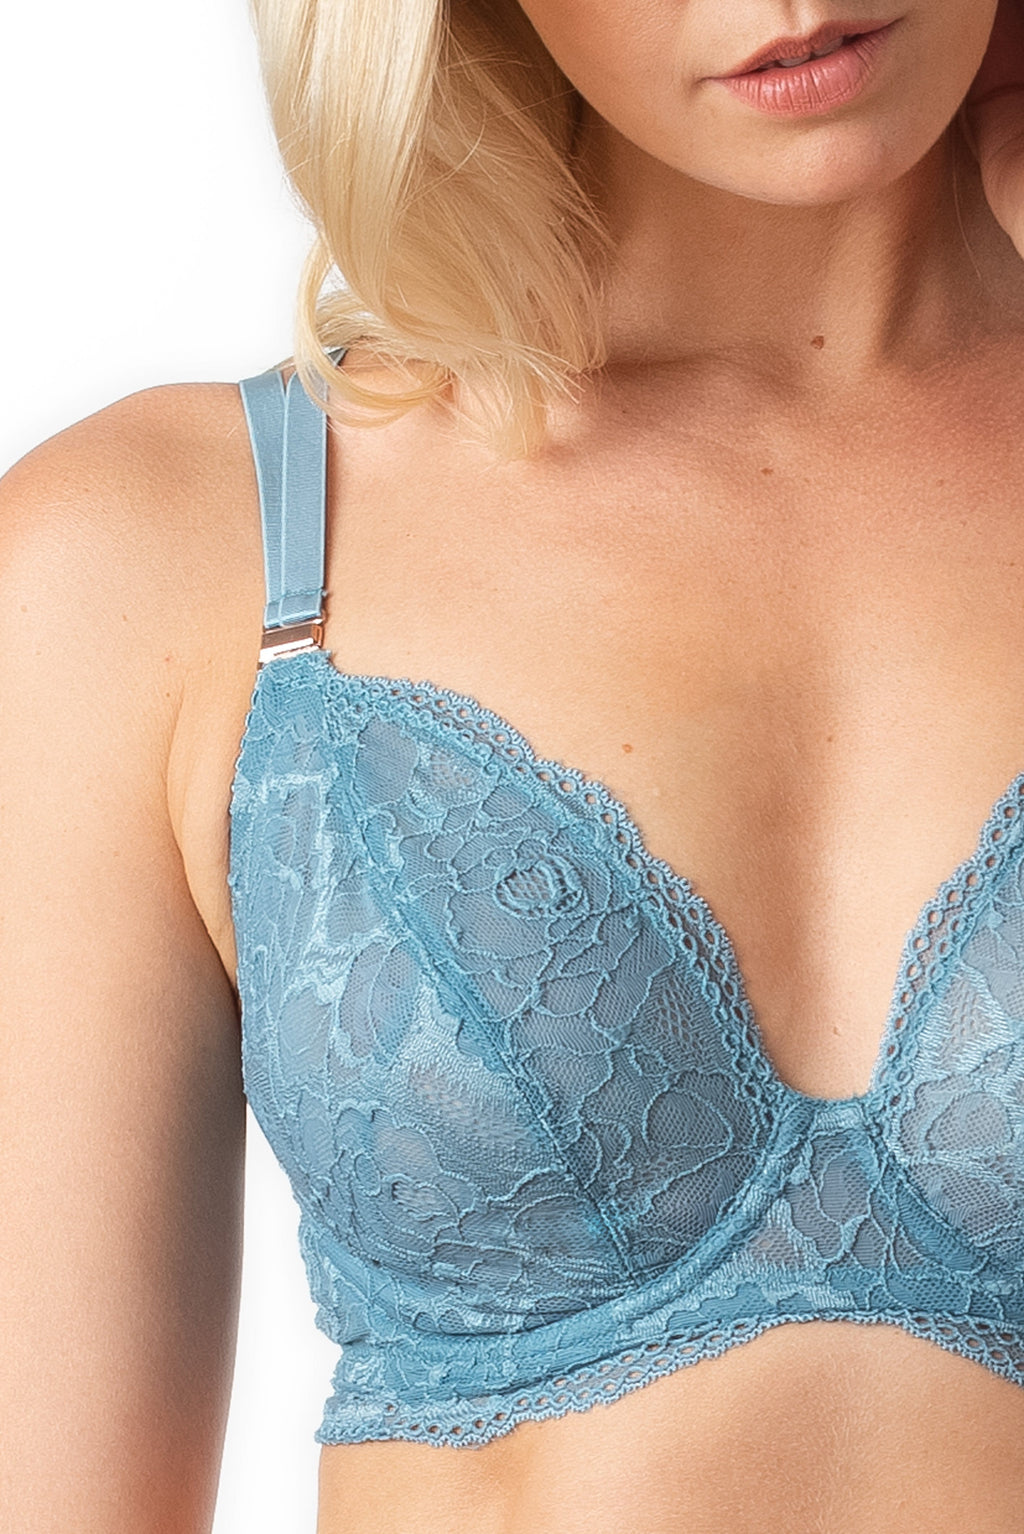 Hotmilk Projectme HEROINE PLUNGE MONSOON Pregnancy Breastfeeding NURSING BRA - FLEXI UNDERWIRE